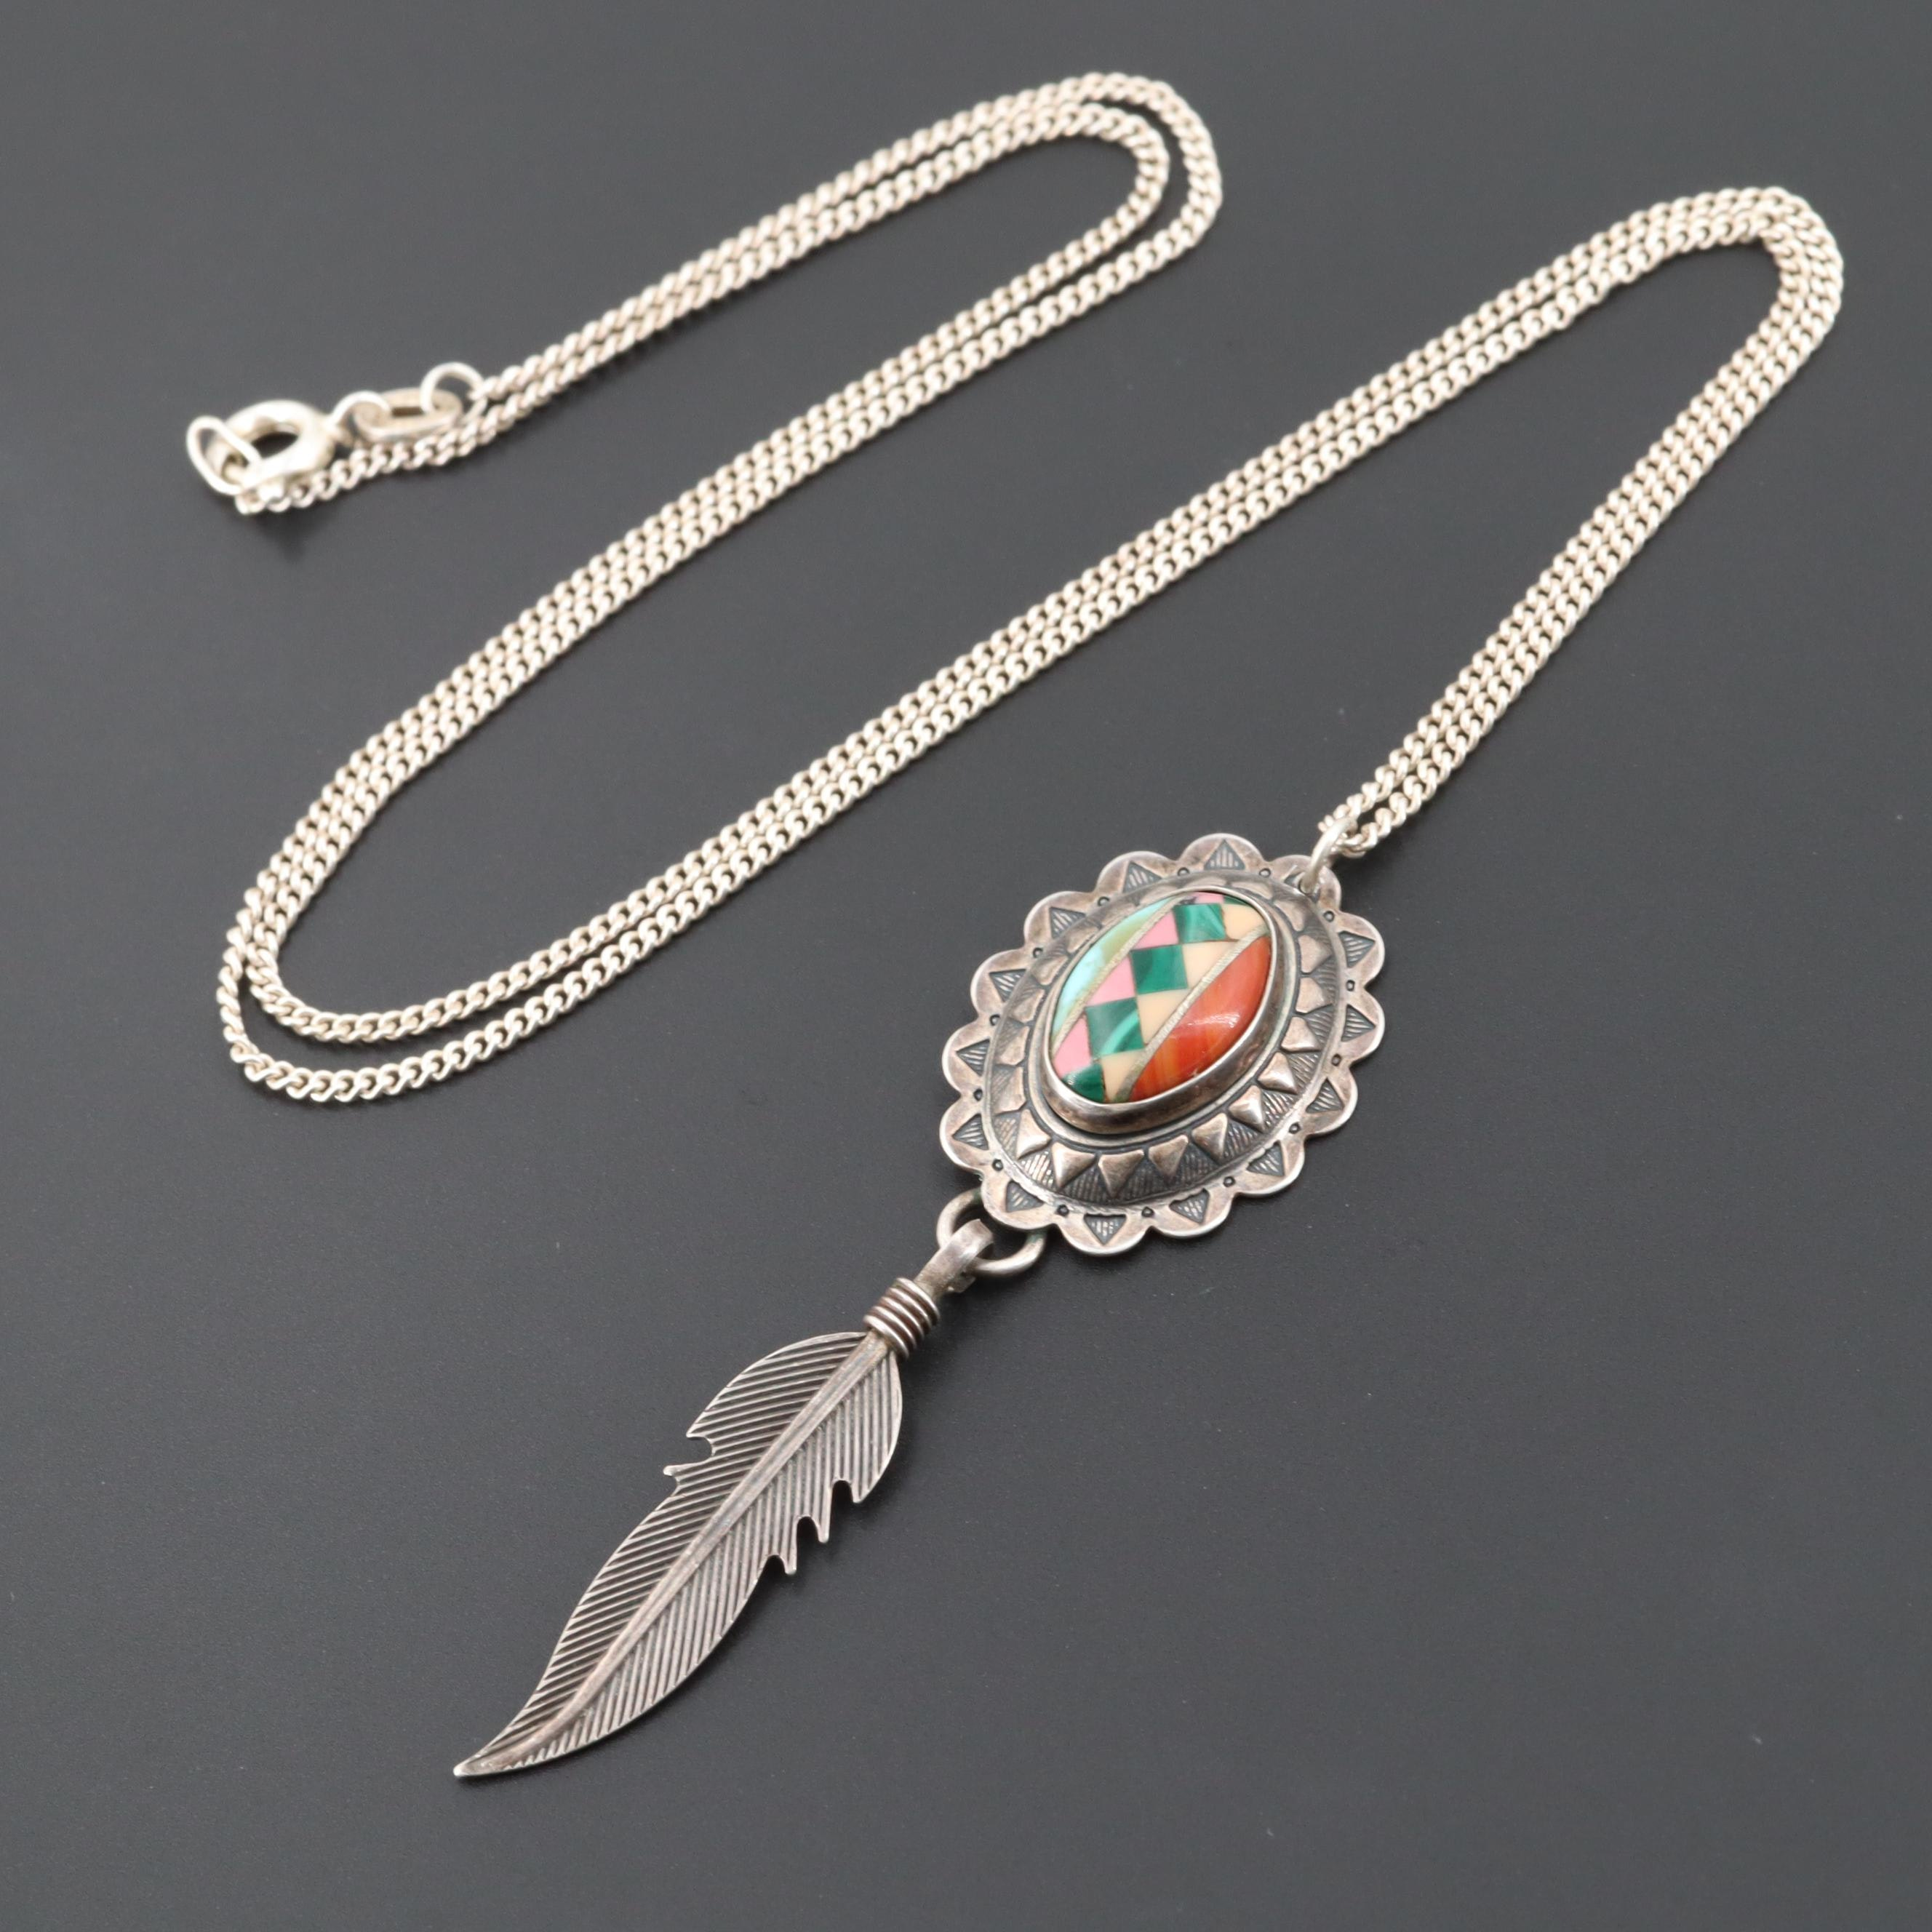 Sterling Silver and 800 Turquoise, Malachite and Spiny Oyster Pendant Necklace